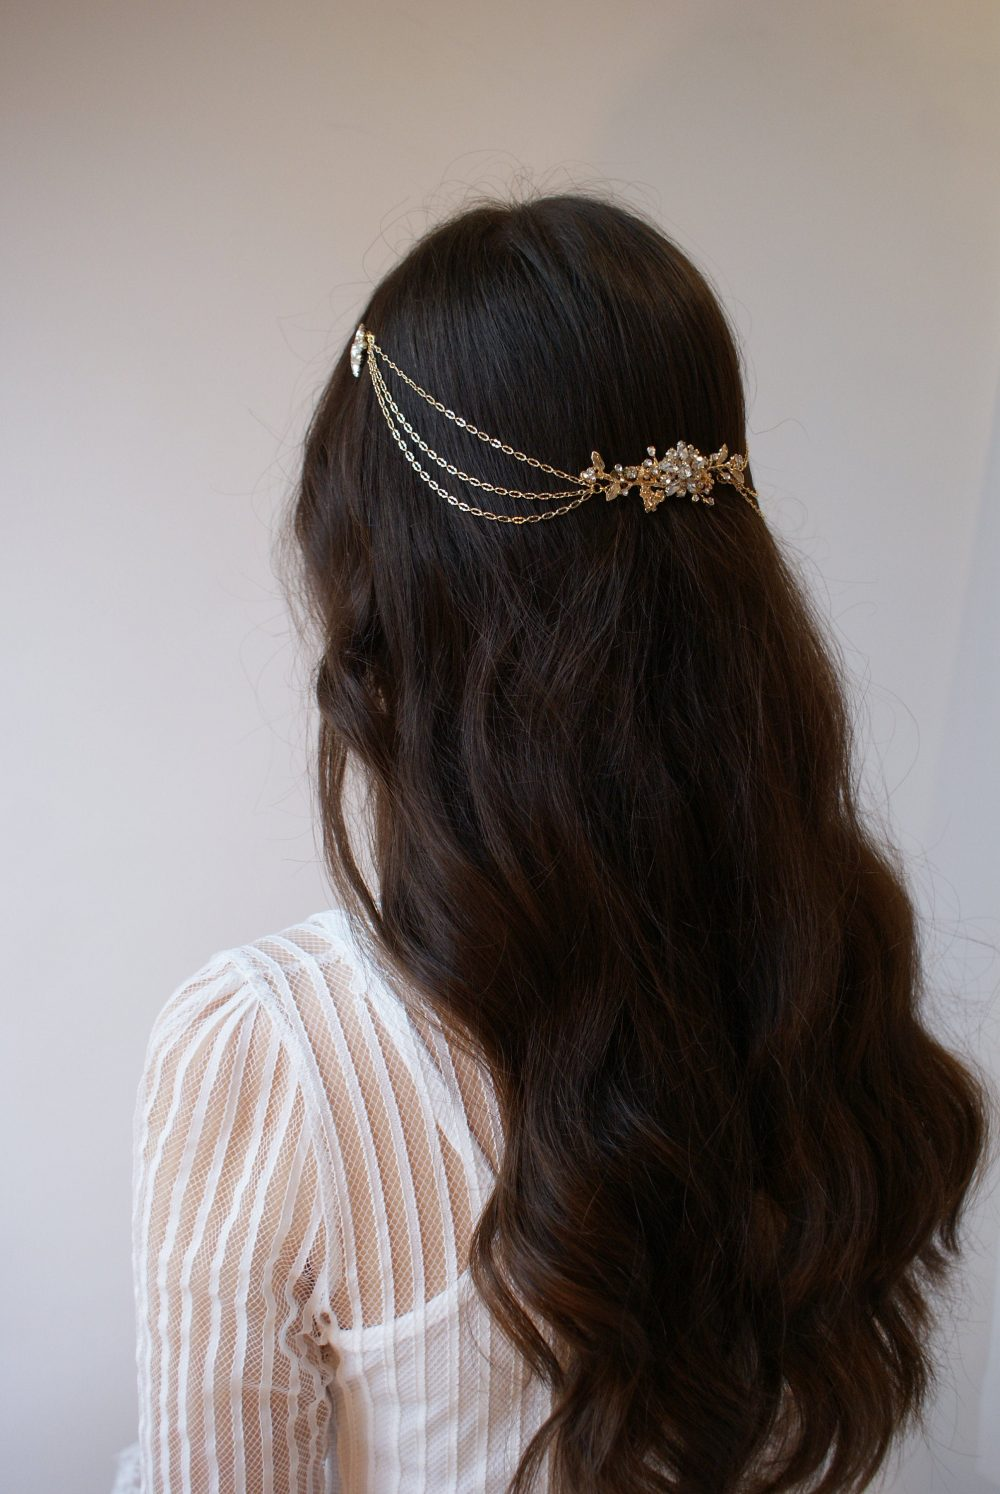 Draped Bridal Headpiece - Gold Wedding Hair Drape Accessory With Swags Chain- Modern Stars